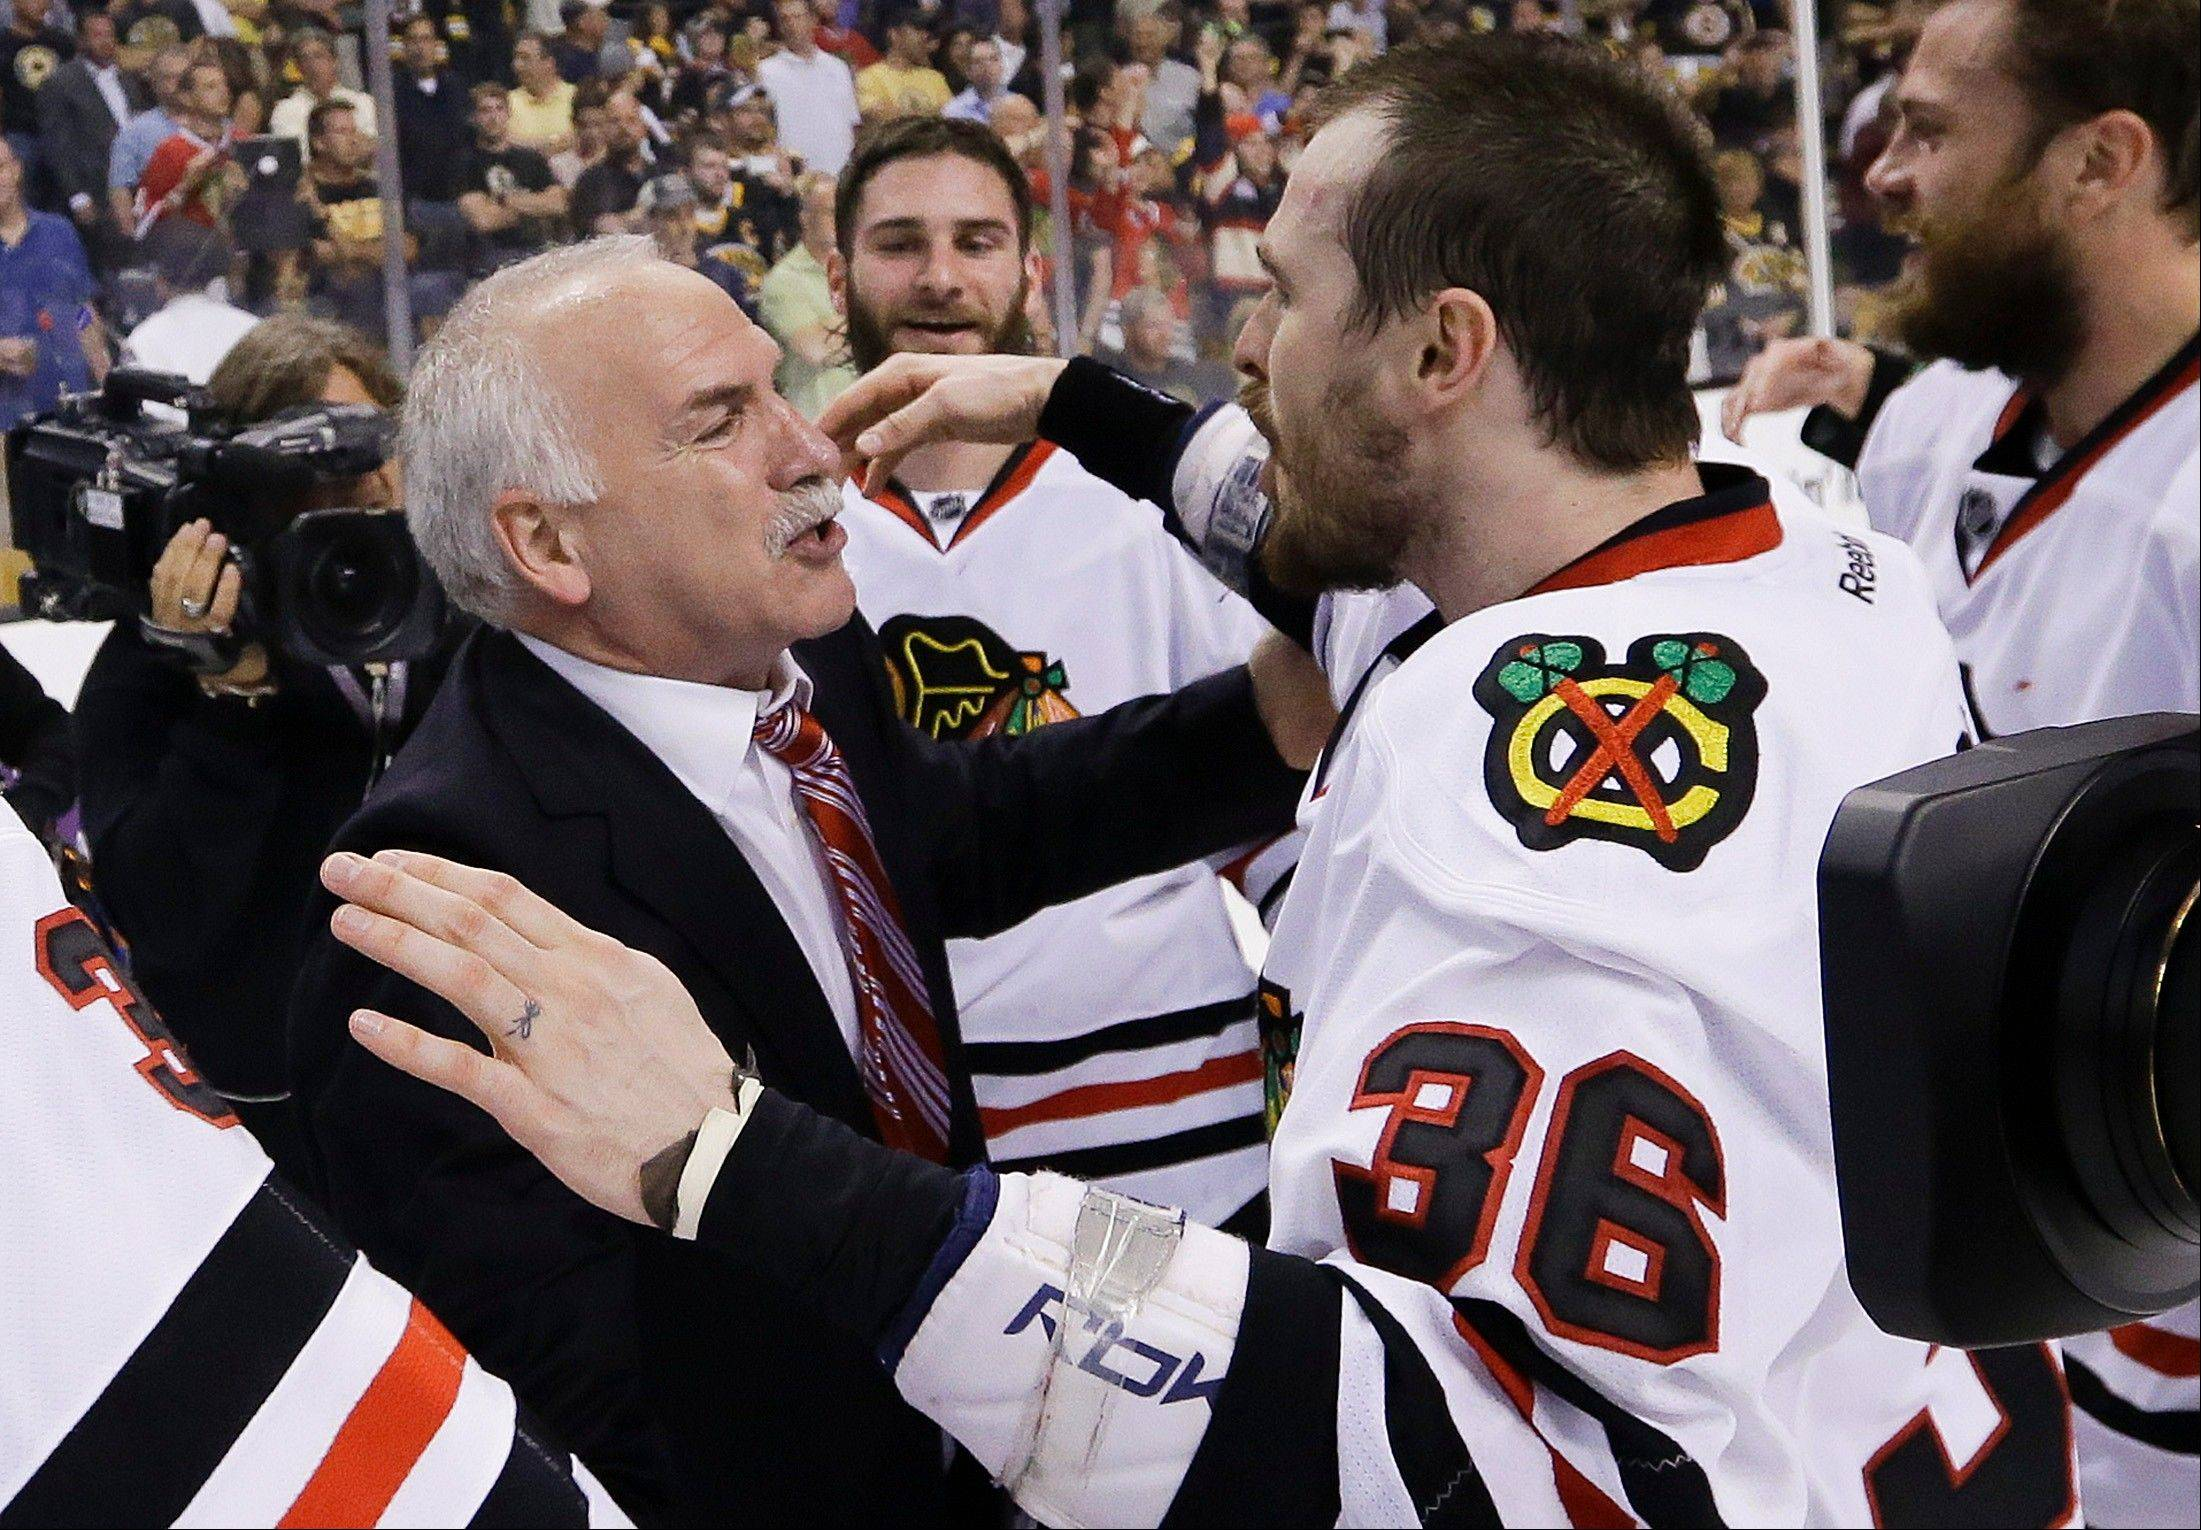 Chicago Blackhawks head coach Joel Quenneville and Chicago Blackhawks center Dave Bolland (36) celebrate the Stanley Cup championship after the Blackhawks beat the Boston Bruins 3-2in Game 6 of the NHL hockey Stanley Cup Finals Monday, June 24, 2013, in Boston. (AP Photo/Elise Amendola)